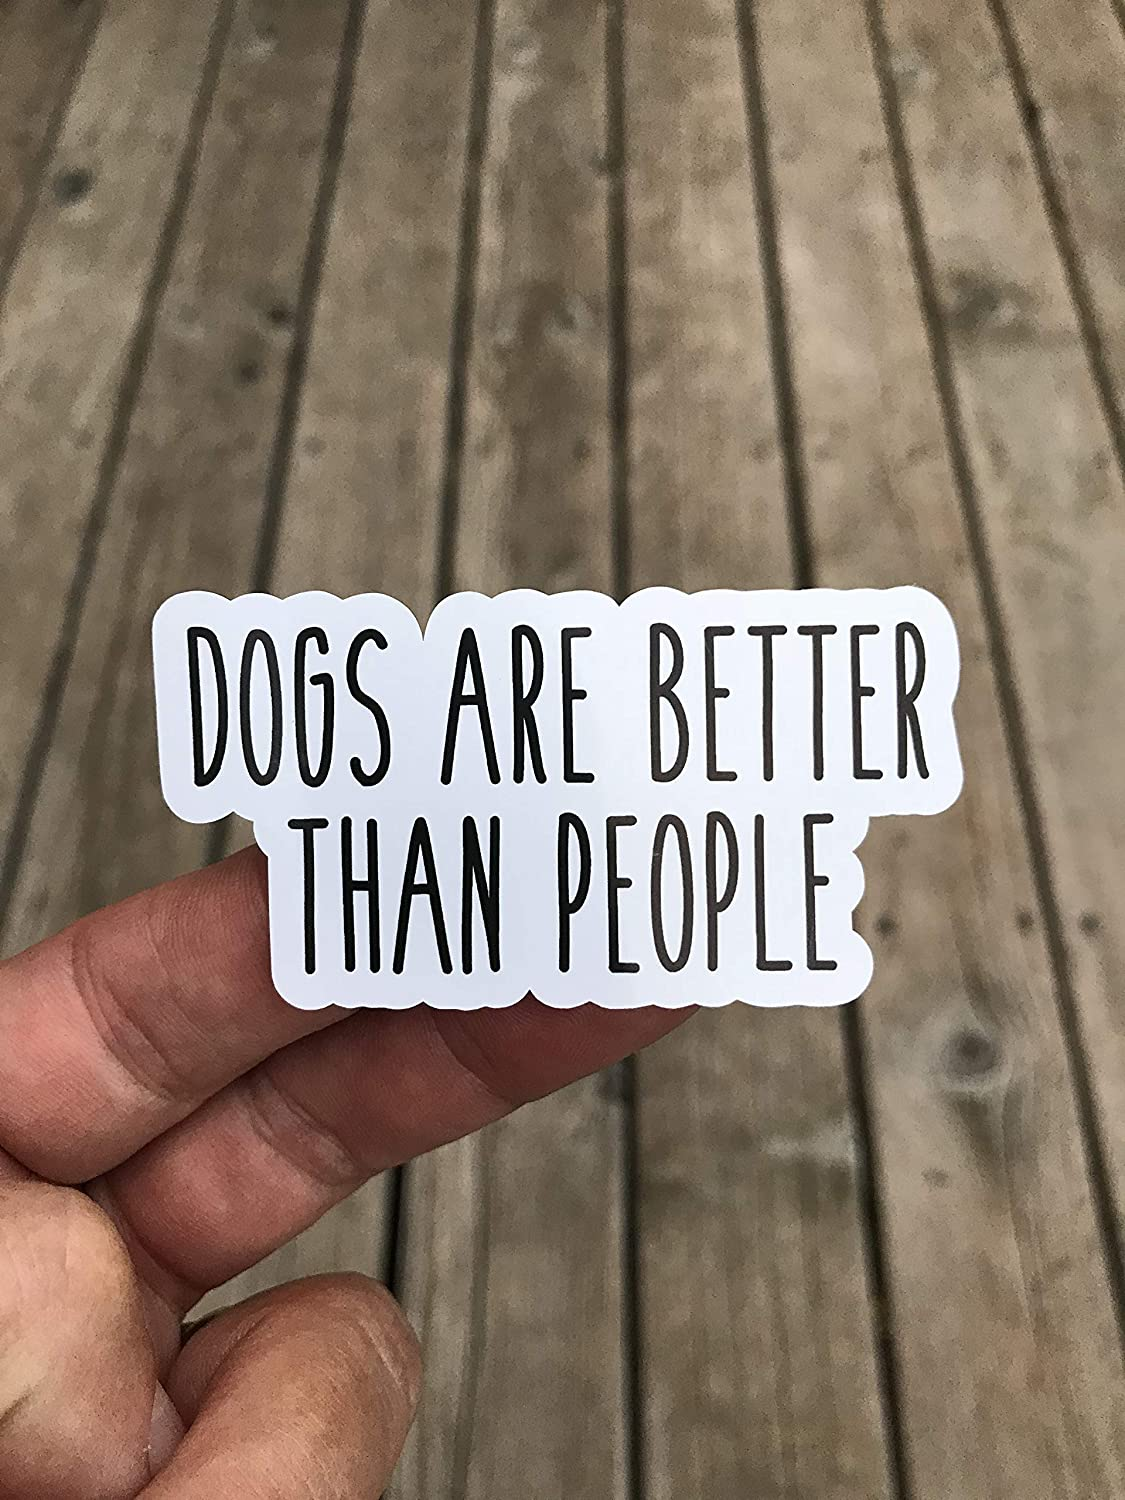 Glossy finish Phone sticker Funny Sticker Dogs are better than people Sticker Laptop sticker Trendy Sticker